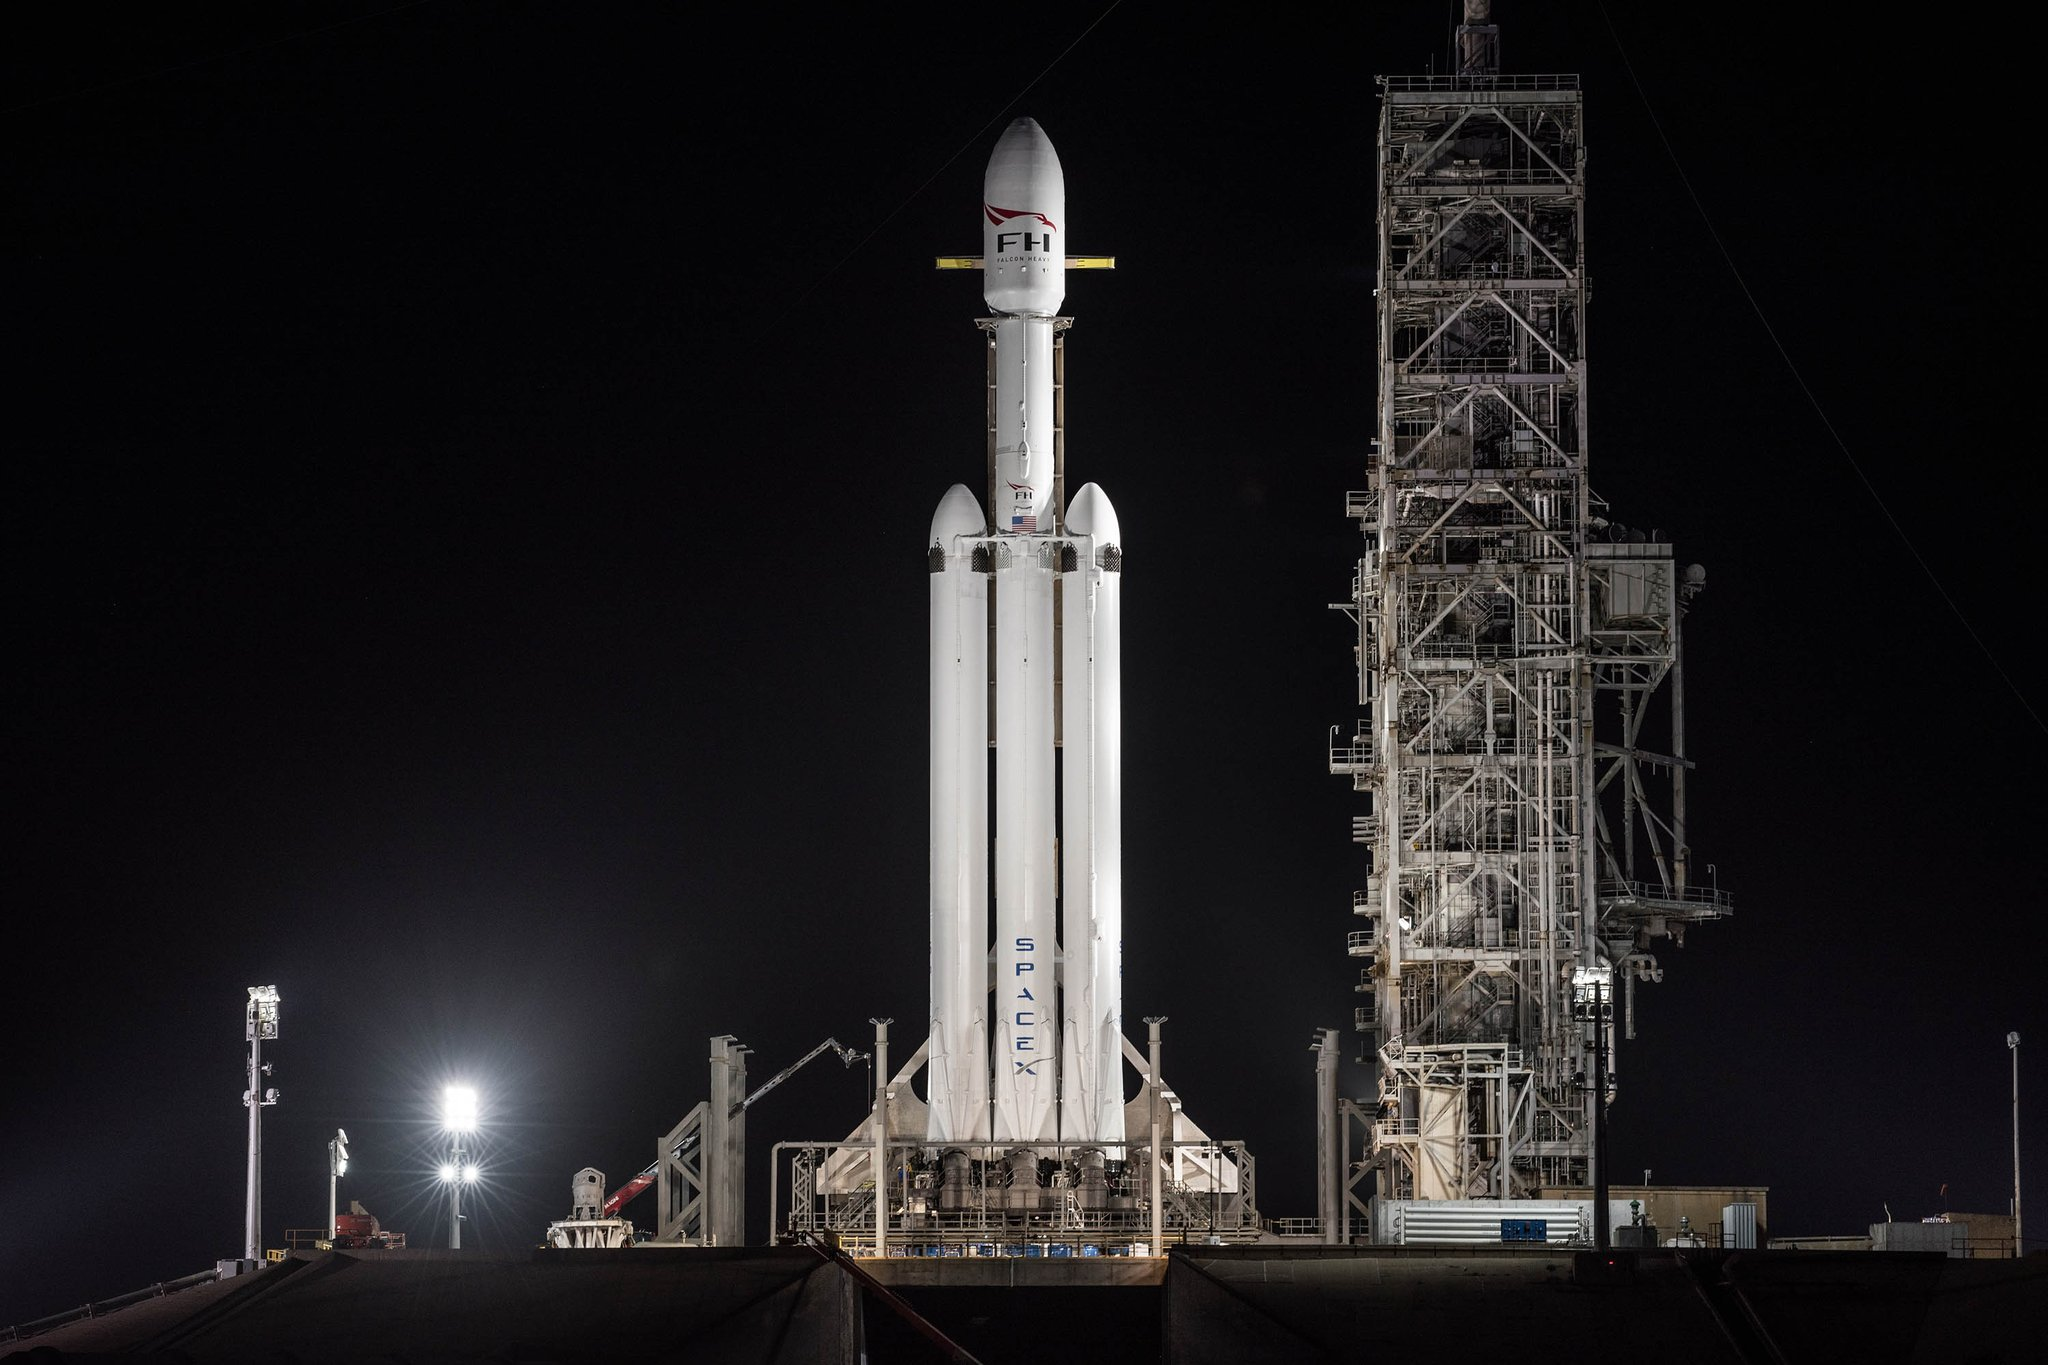 Elon Musk Car In Spac Wallpaper Spacex Nails Falcon Heavy Launch Wing Commander Cic